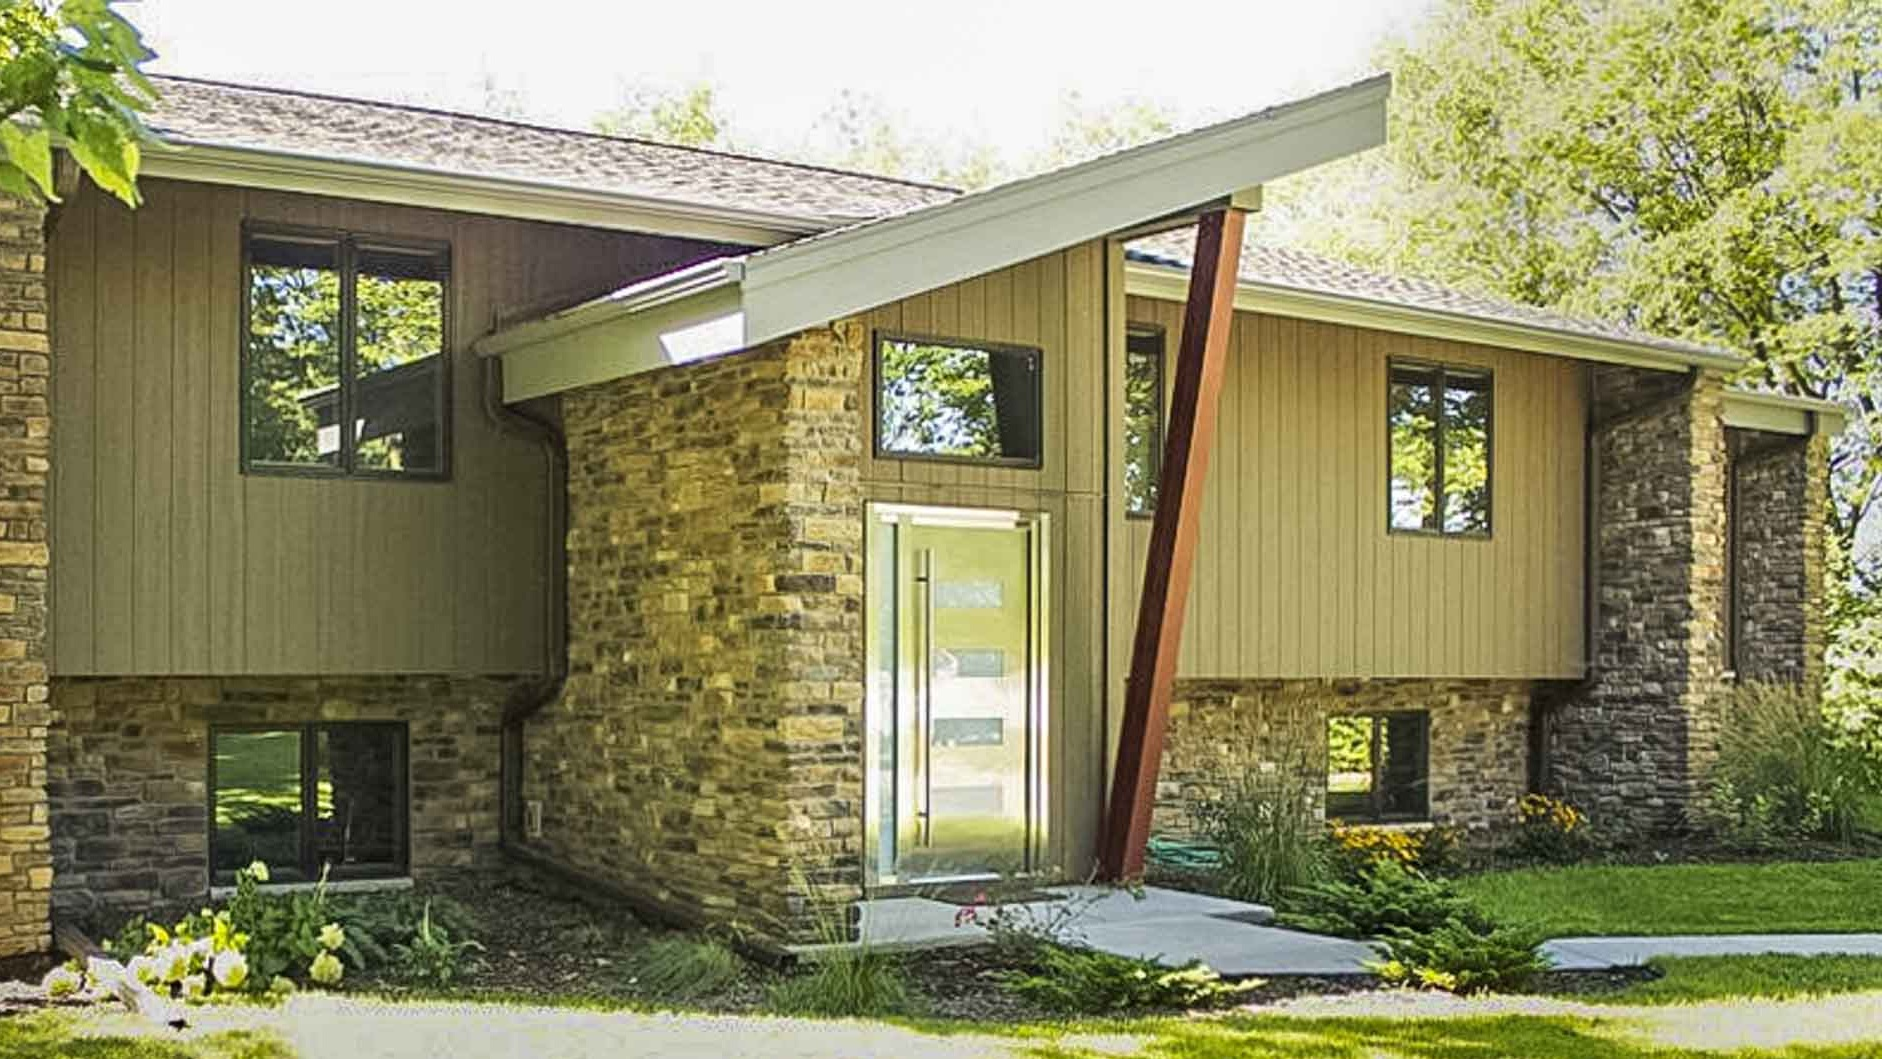 - This home had a modern front entry foyer addition with a steel column and concrete frost wall and footings.